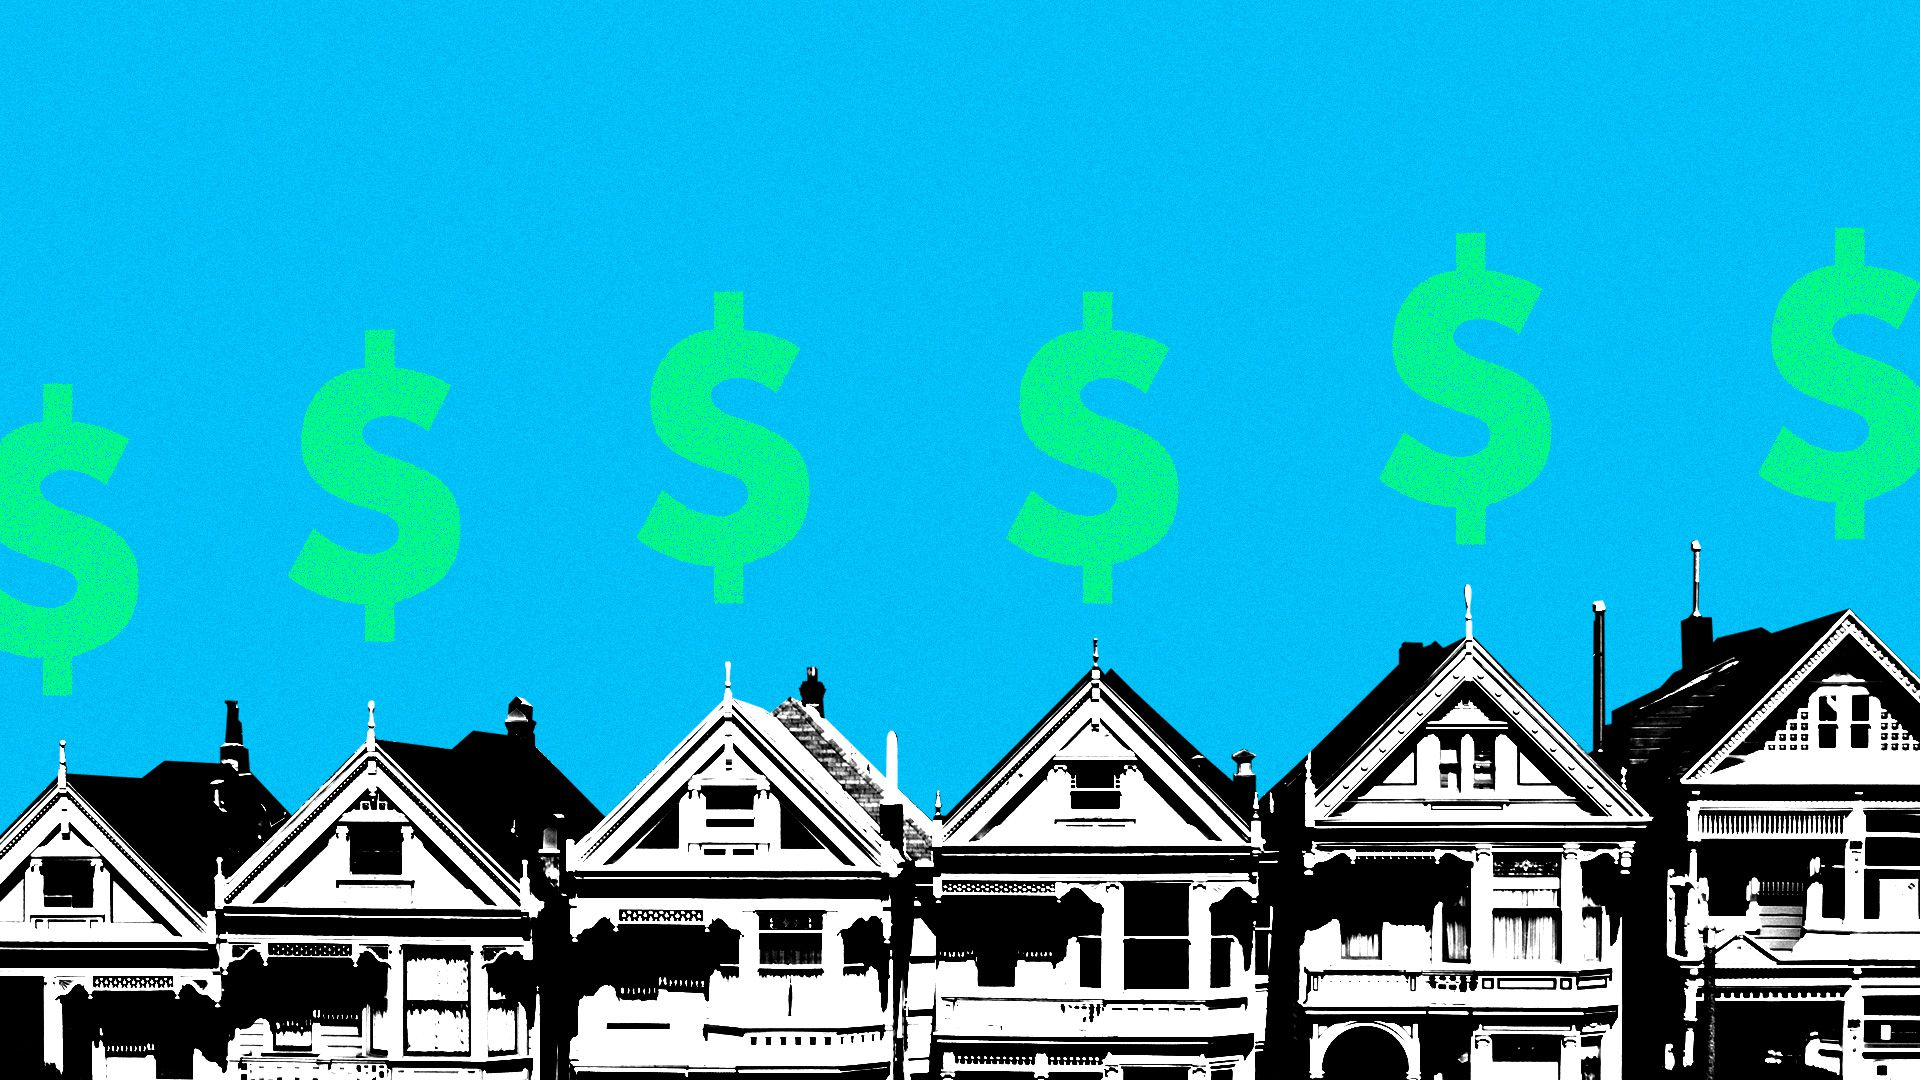 San Francisco rowhouses with dollar signs floating above them